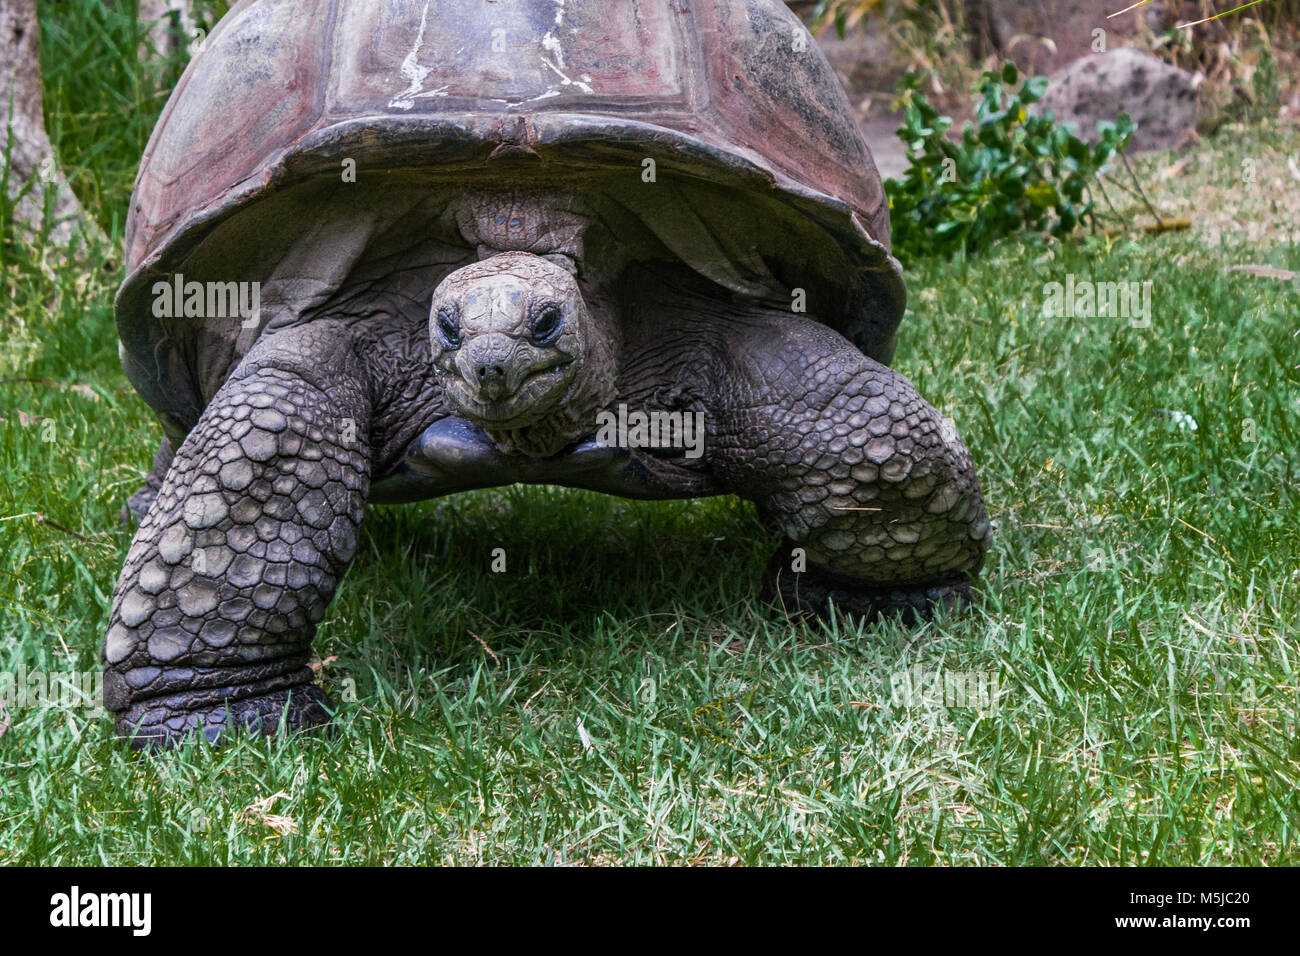 The Aldabra giant tortoise, from the islands of the Aldabra Atoll in the Seychelles, is one of the largest tortoises Stock Photo